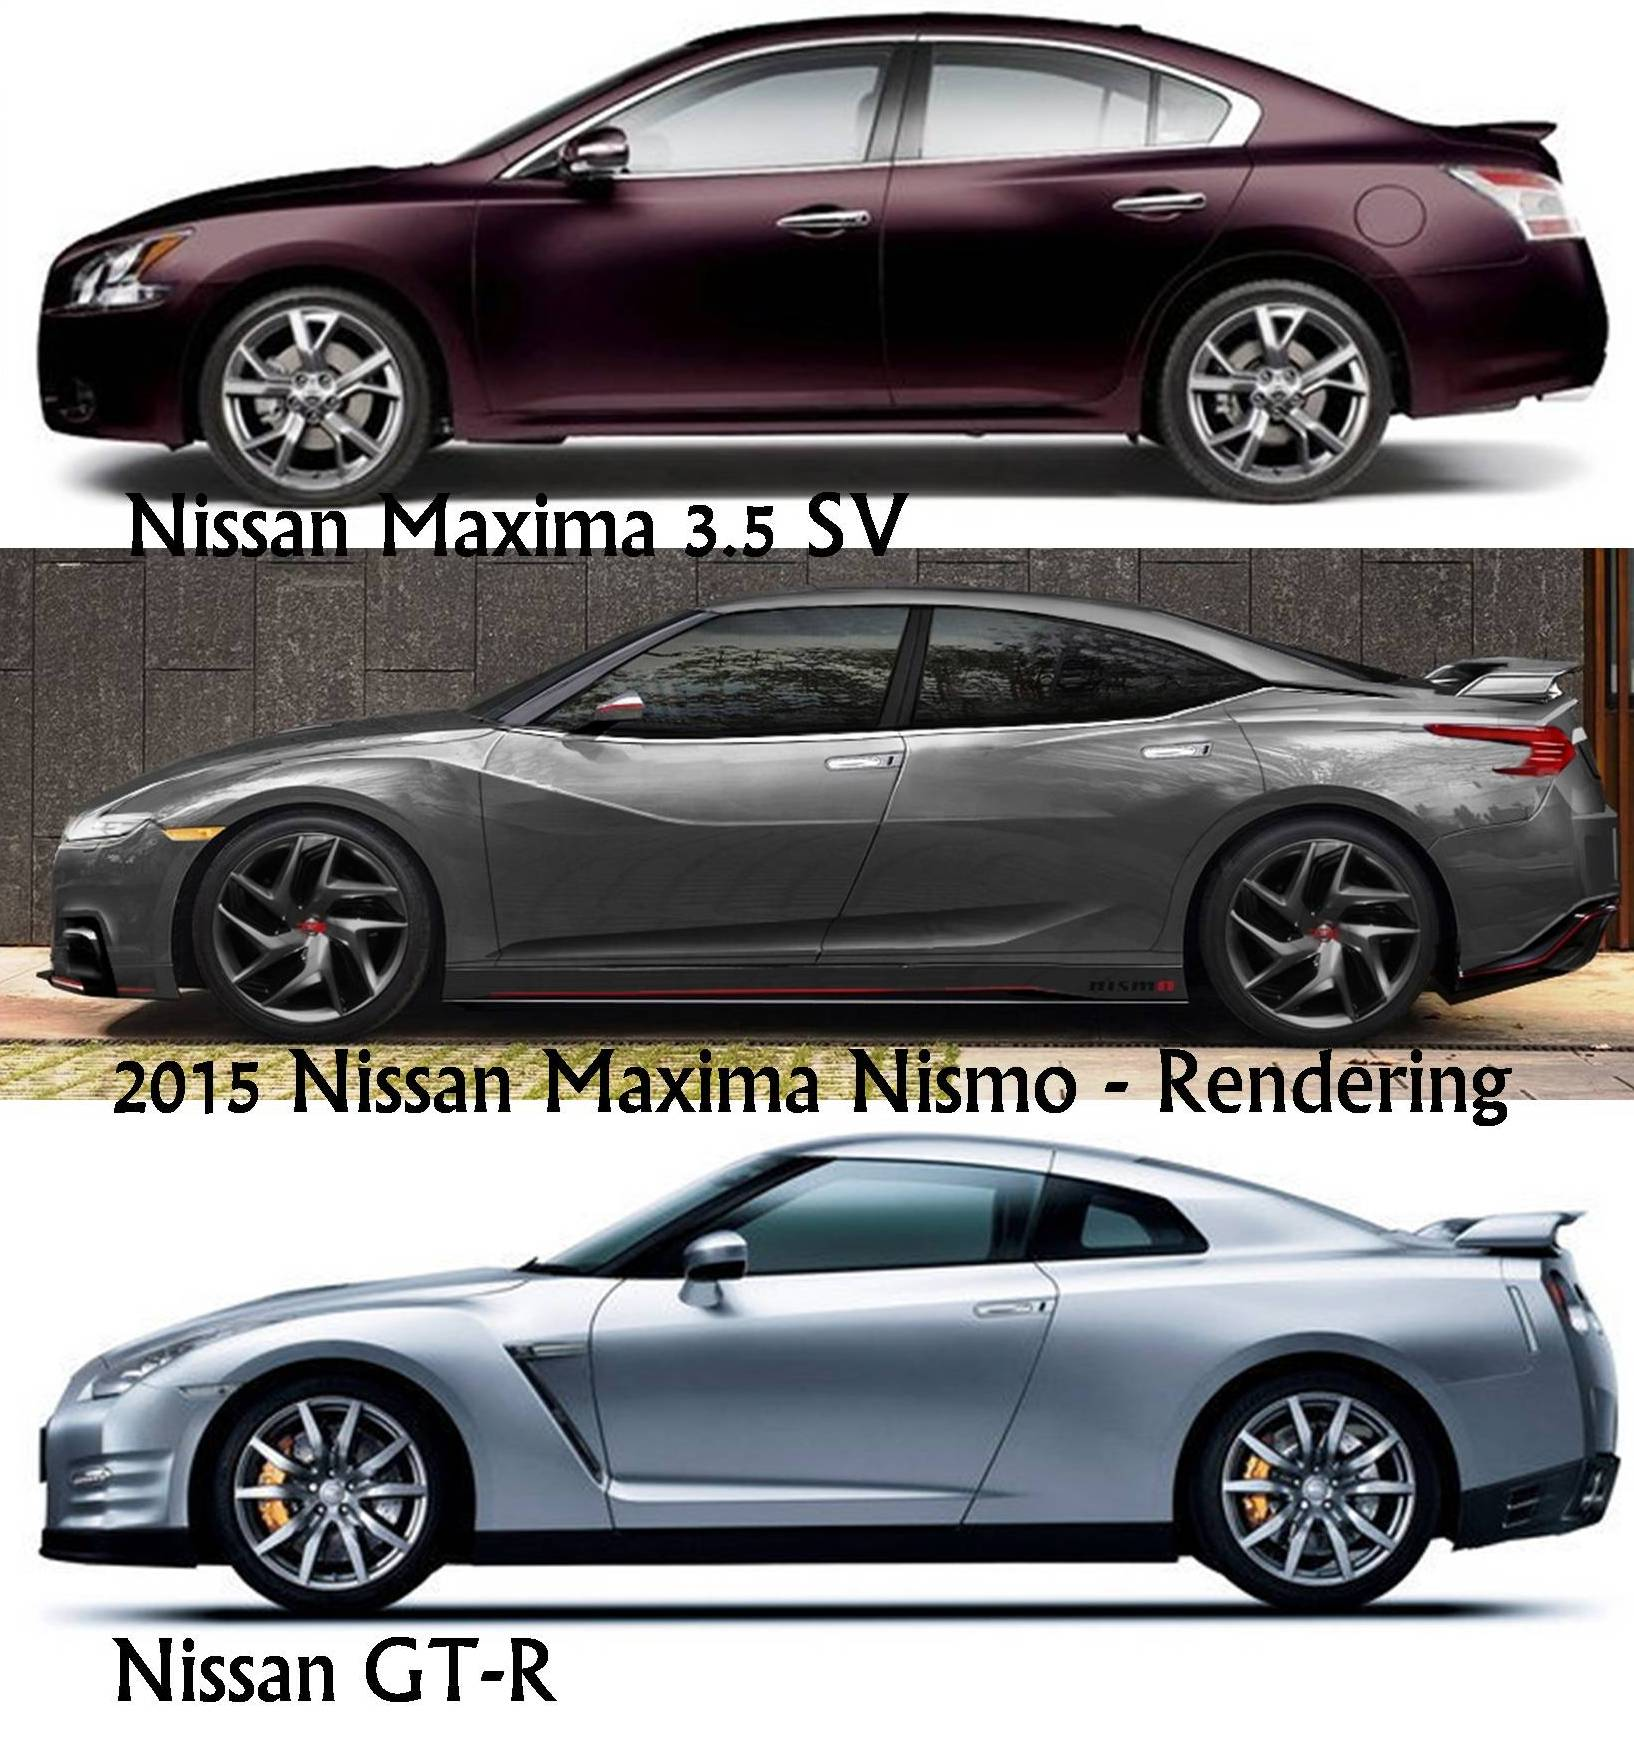 2016 nissan maxima nismo gallery 521409 top speed. Black Bedroom Furniture Sets. Home Design Ideas